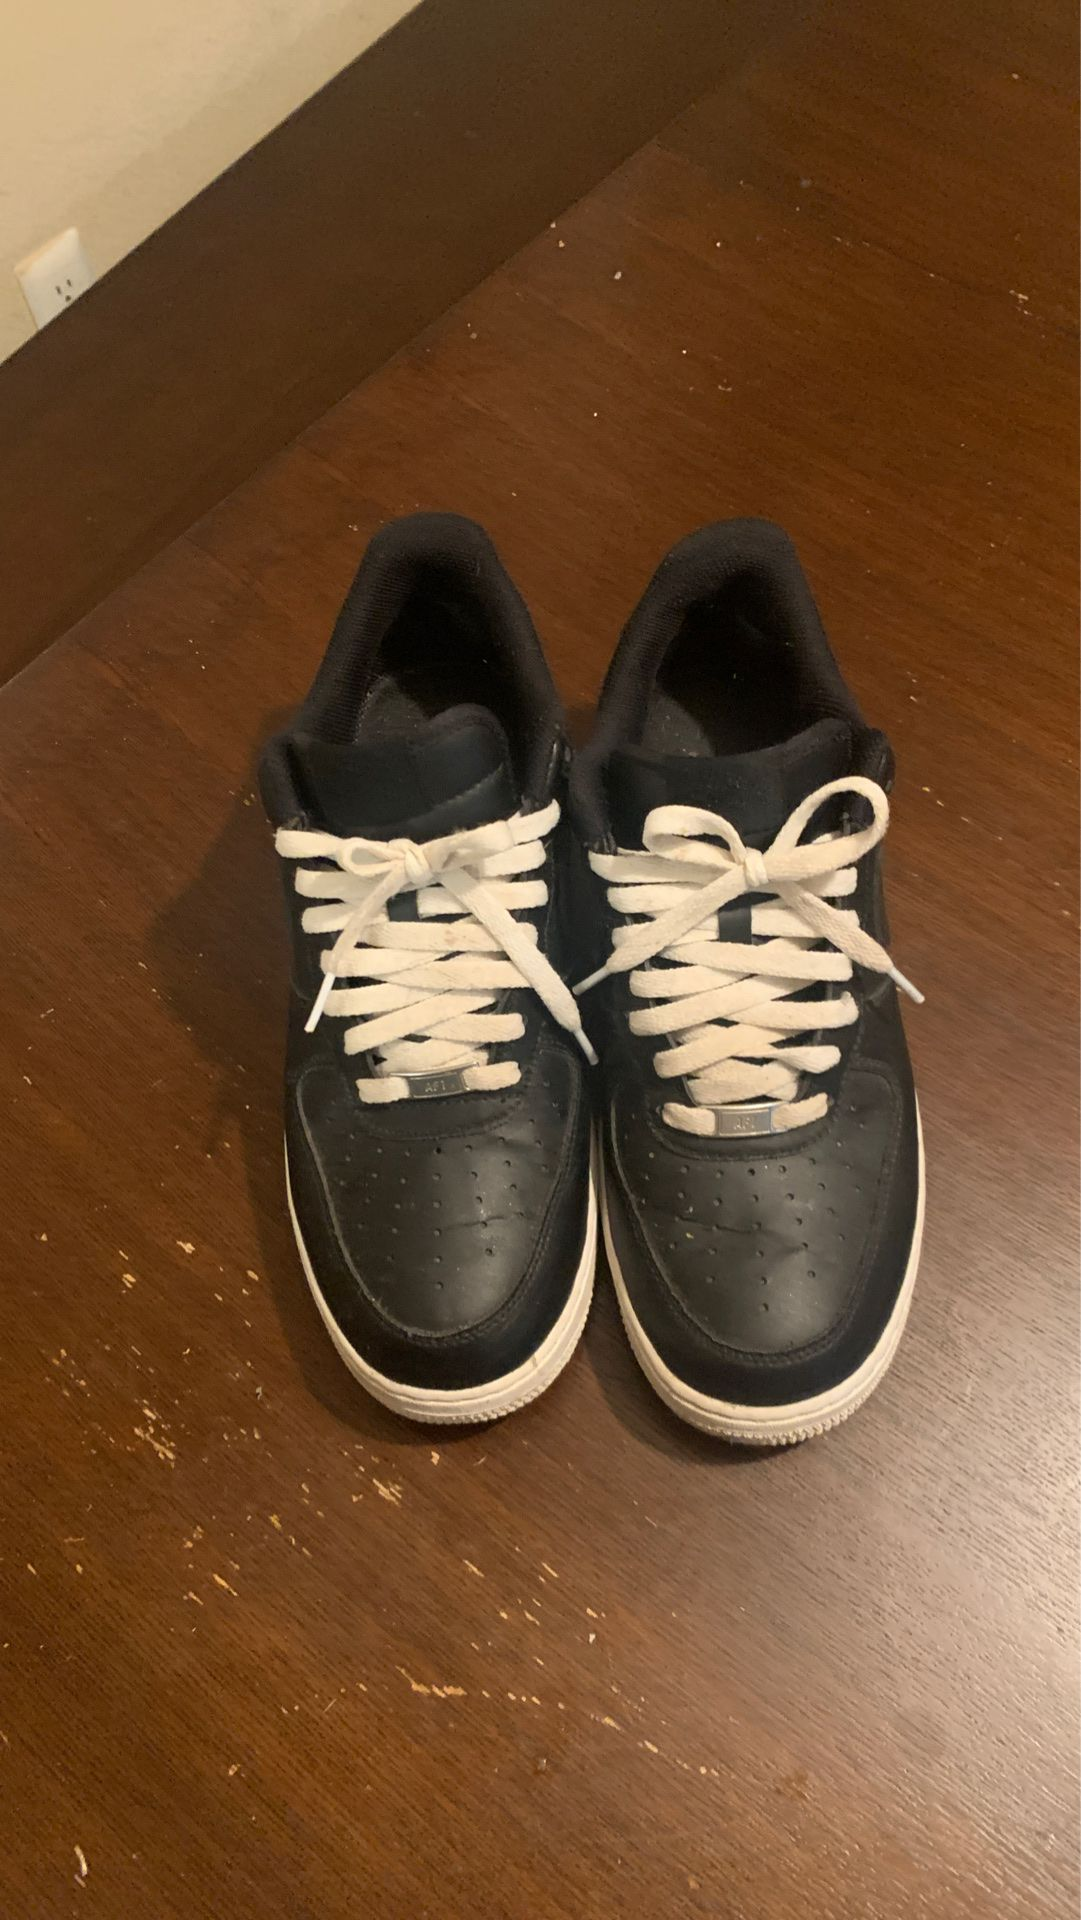 White and black airforce ones